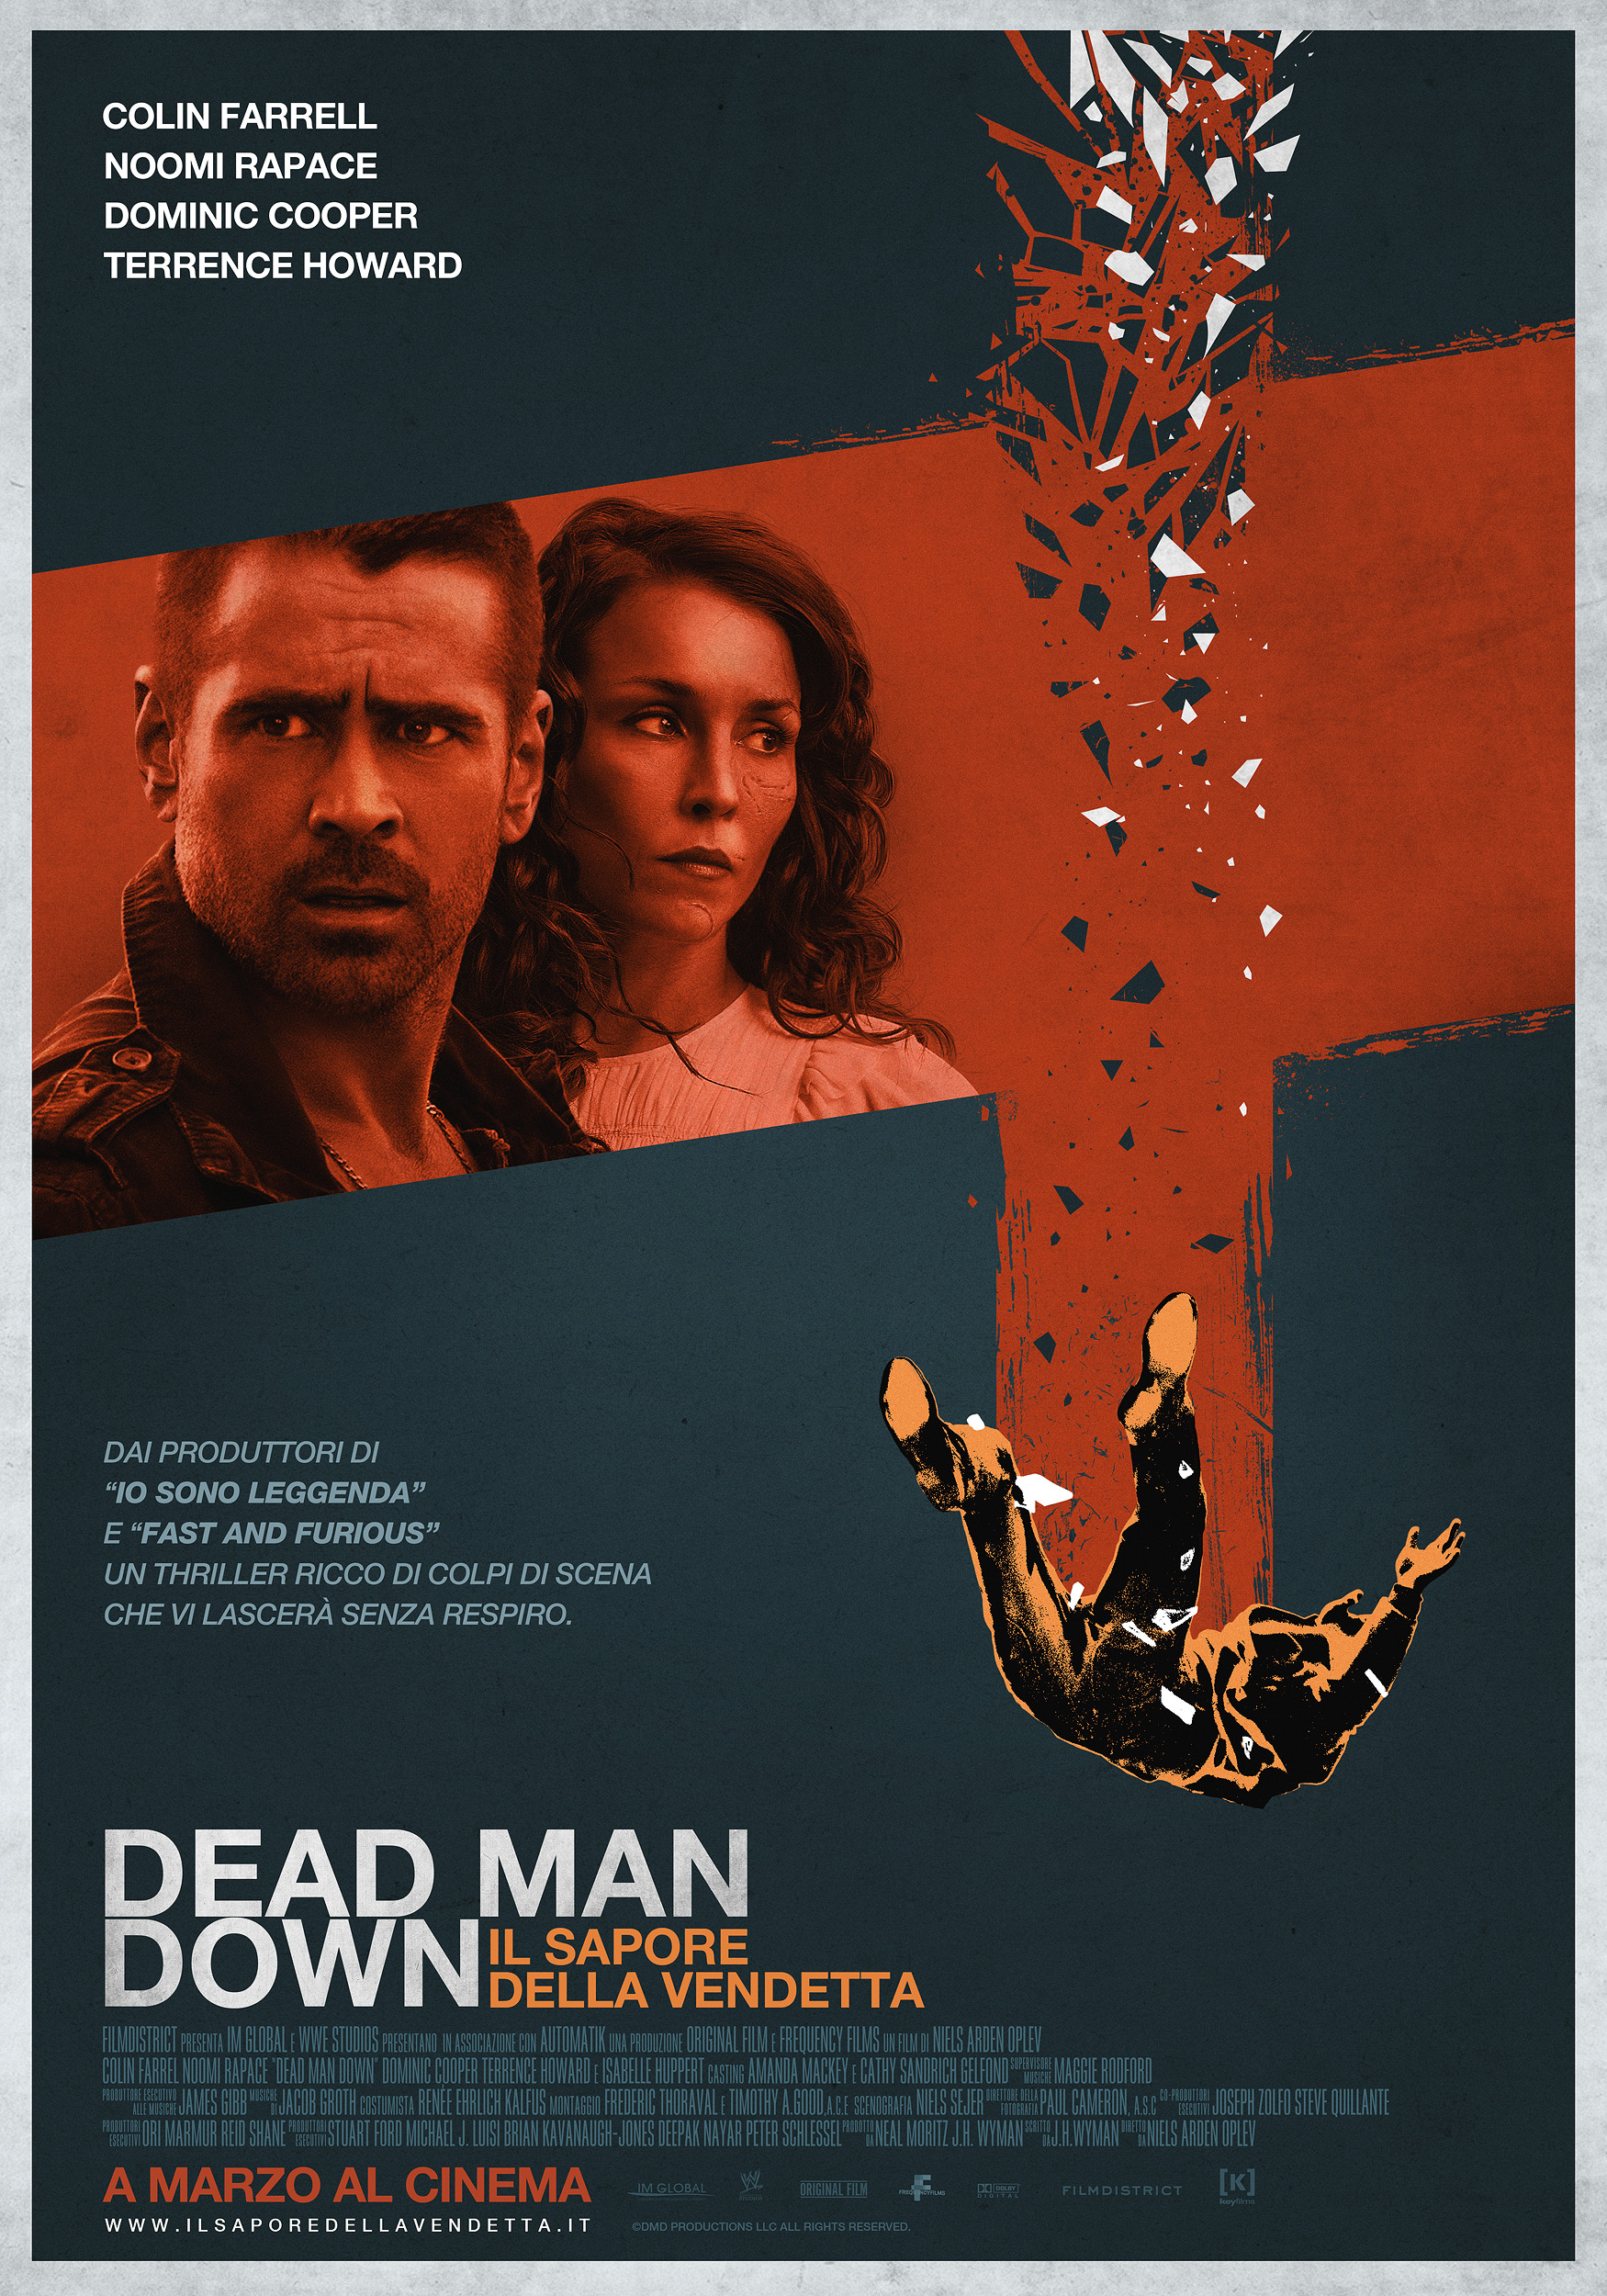 dead_man_dan___il_sapore_della_vendetta_by_medusone-d5vd1kl